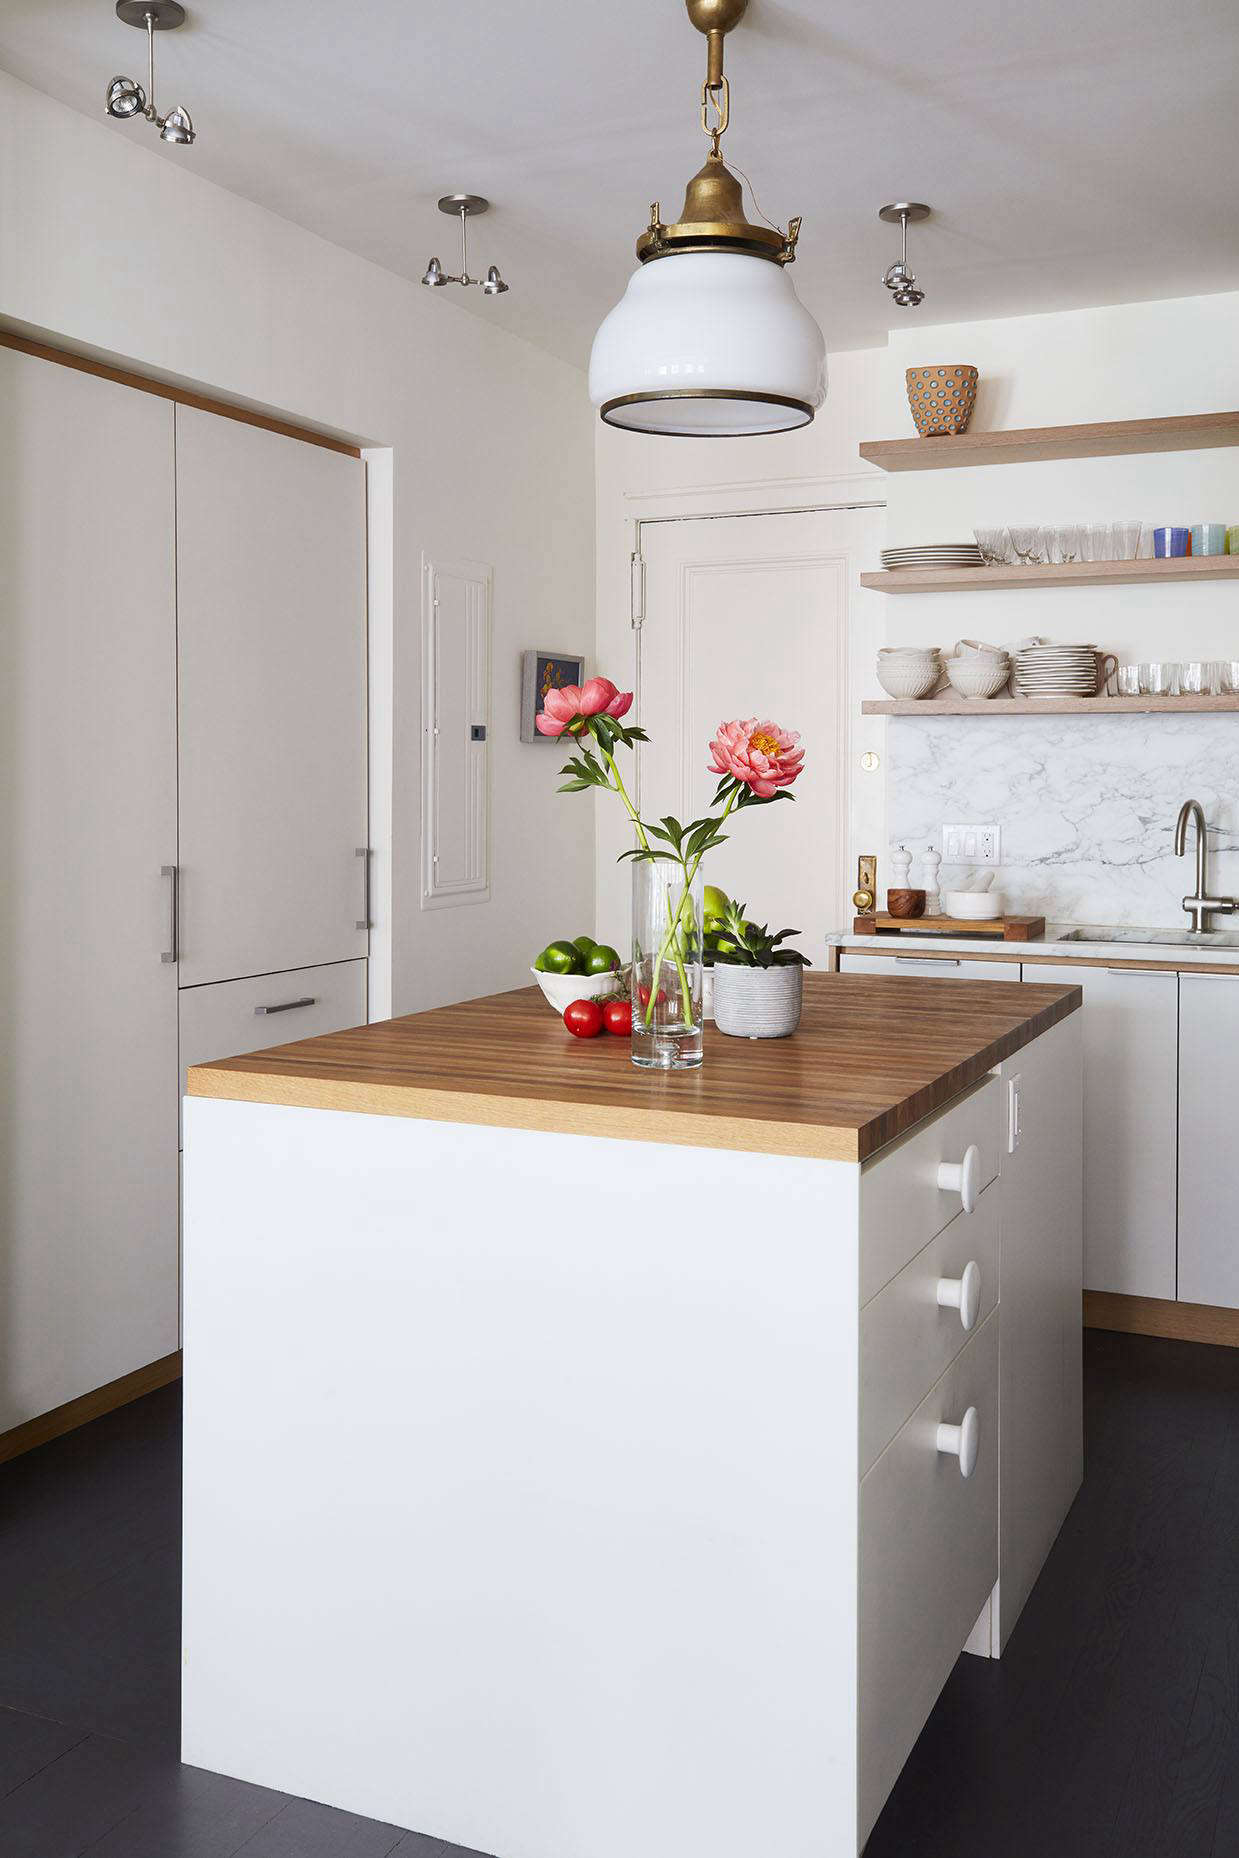 The refrigerator is concealed behindan integrated panel that disappears into built-in storage to the left. On the kitchen island, the designers used oversizeWhite Muuto Dots as drawer pulls. The large glass and brass pendant light is an antique from Dallas sourced by Terbovich.